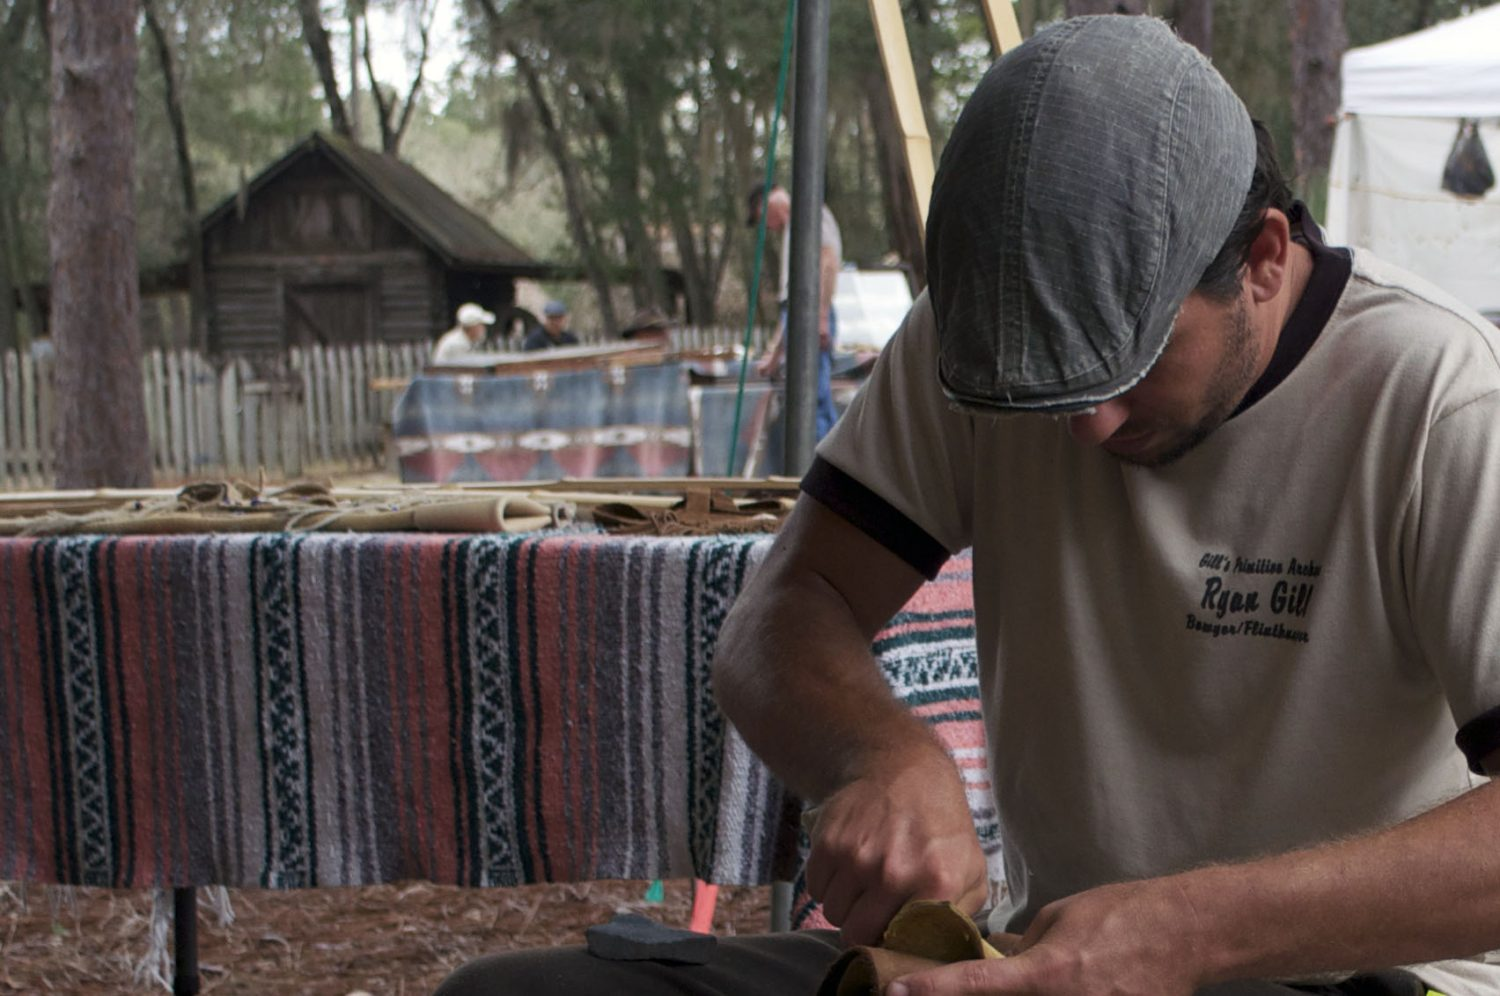 Ryan Gill, a resident of Hill Springs, Fla., demonstrated making a stone hunting point at the annual Silver River Knap-In in Ocala on Saturday. The event, which was held all weekend, featured experts in prehistoric skills who displayed and sold their crafts.